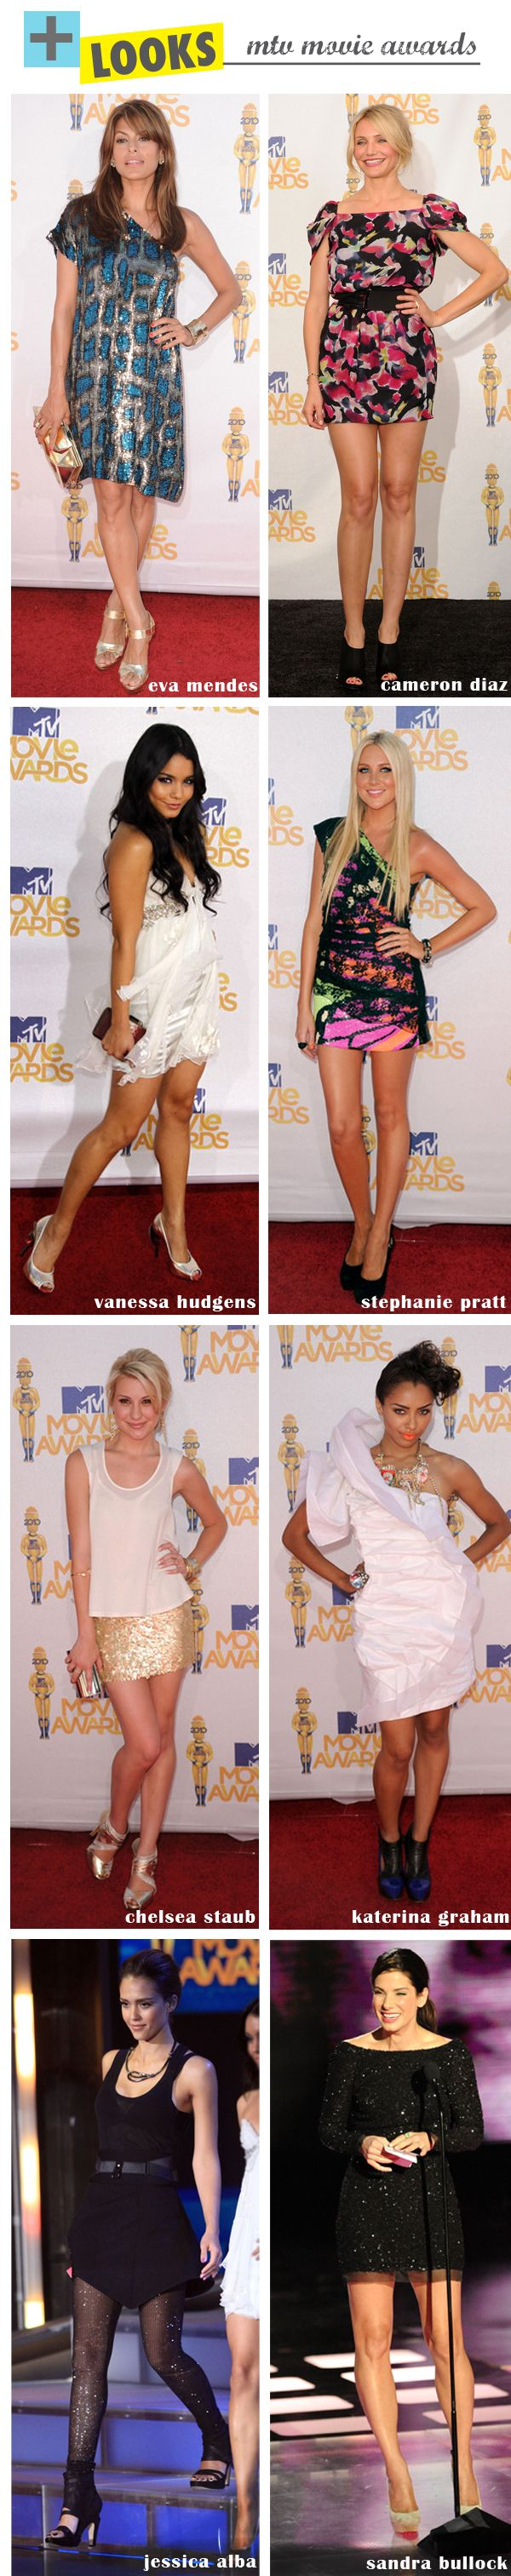 MAIS LOOKS DO MTV MOVIE AWARDS 2010